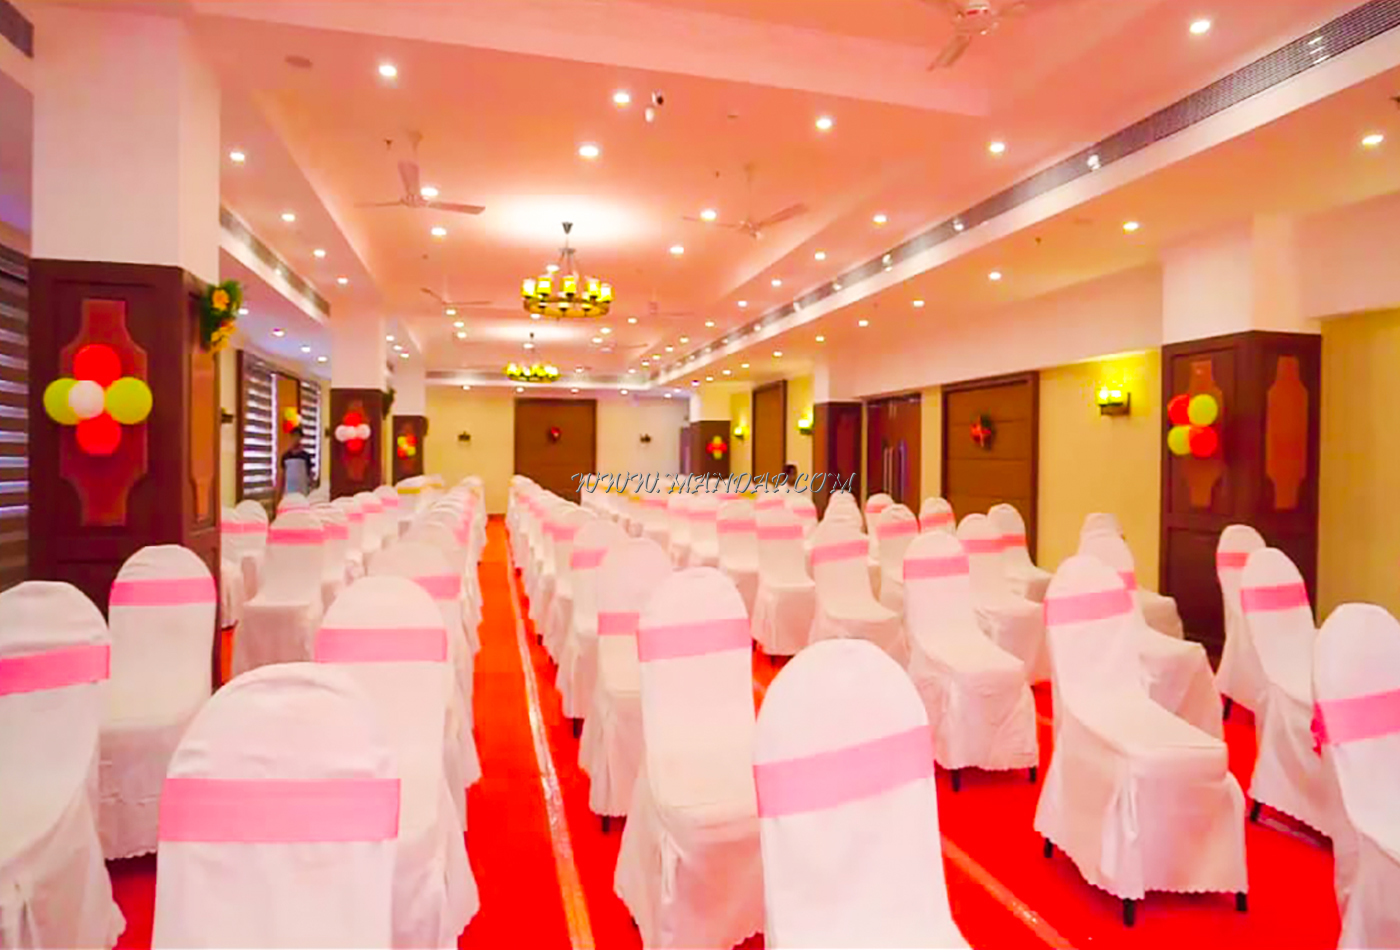 Find the availability of the AVS Imperiaa Banqute Hall 1 (A/C) in Karaikal, Pondicherry and avail special offers